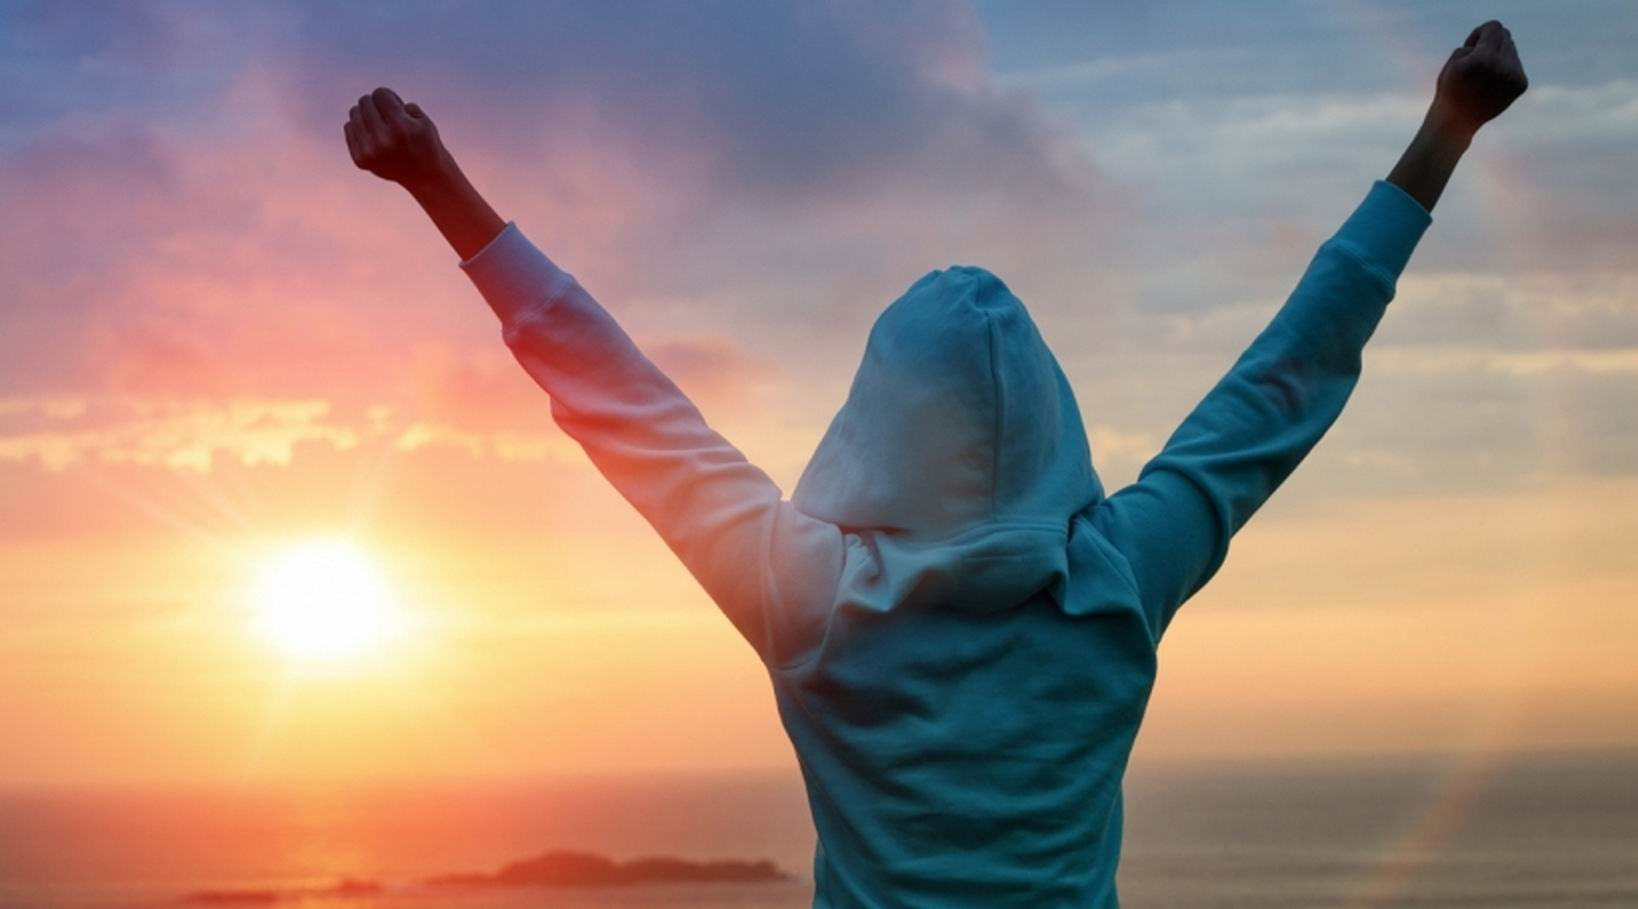 25 motivational quotes to help you achieve your dreams